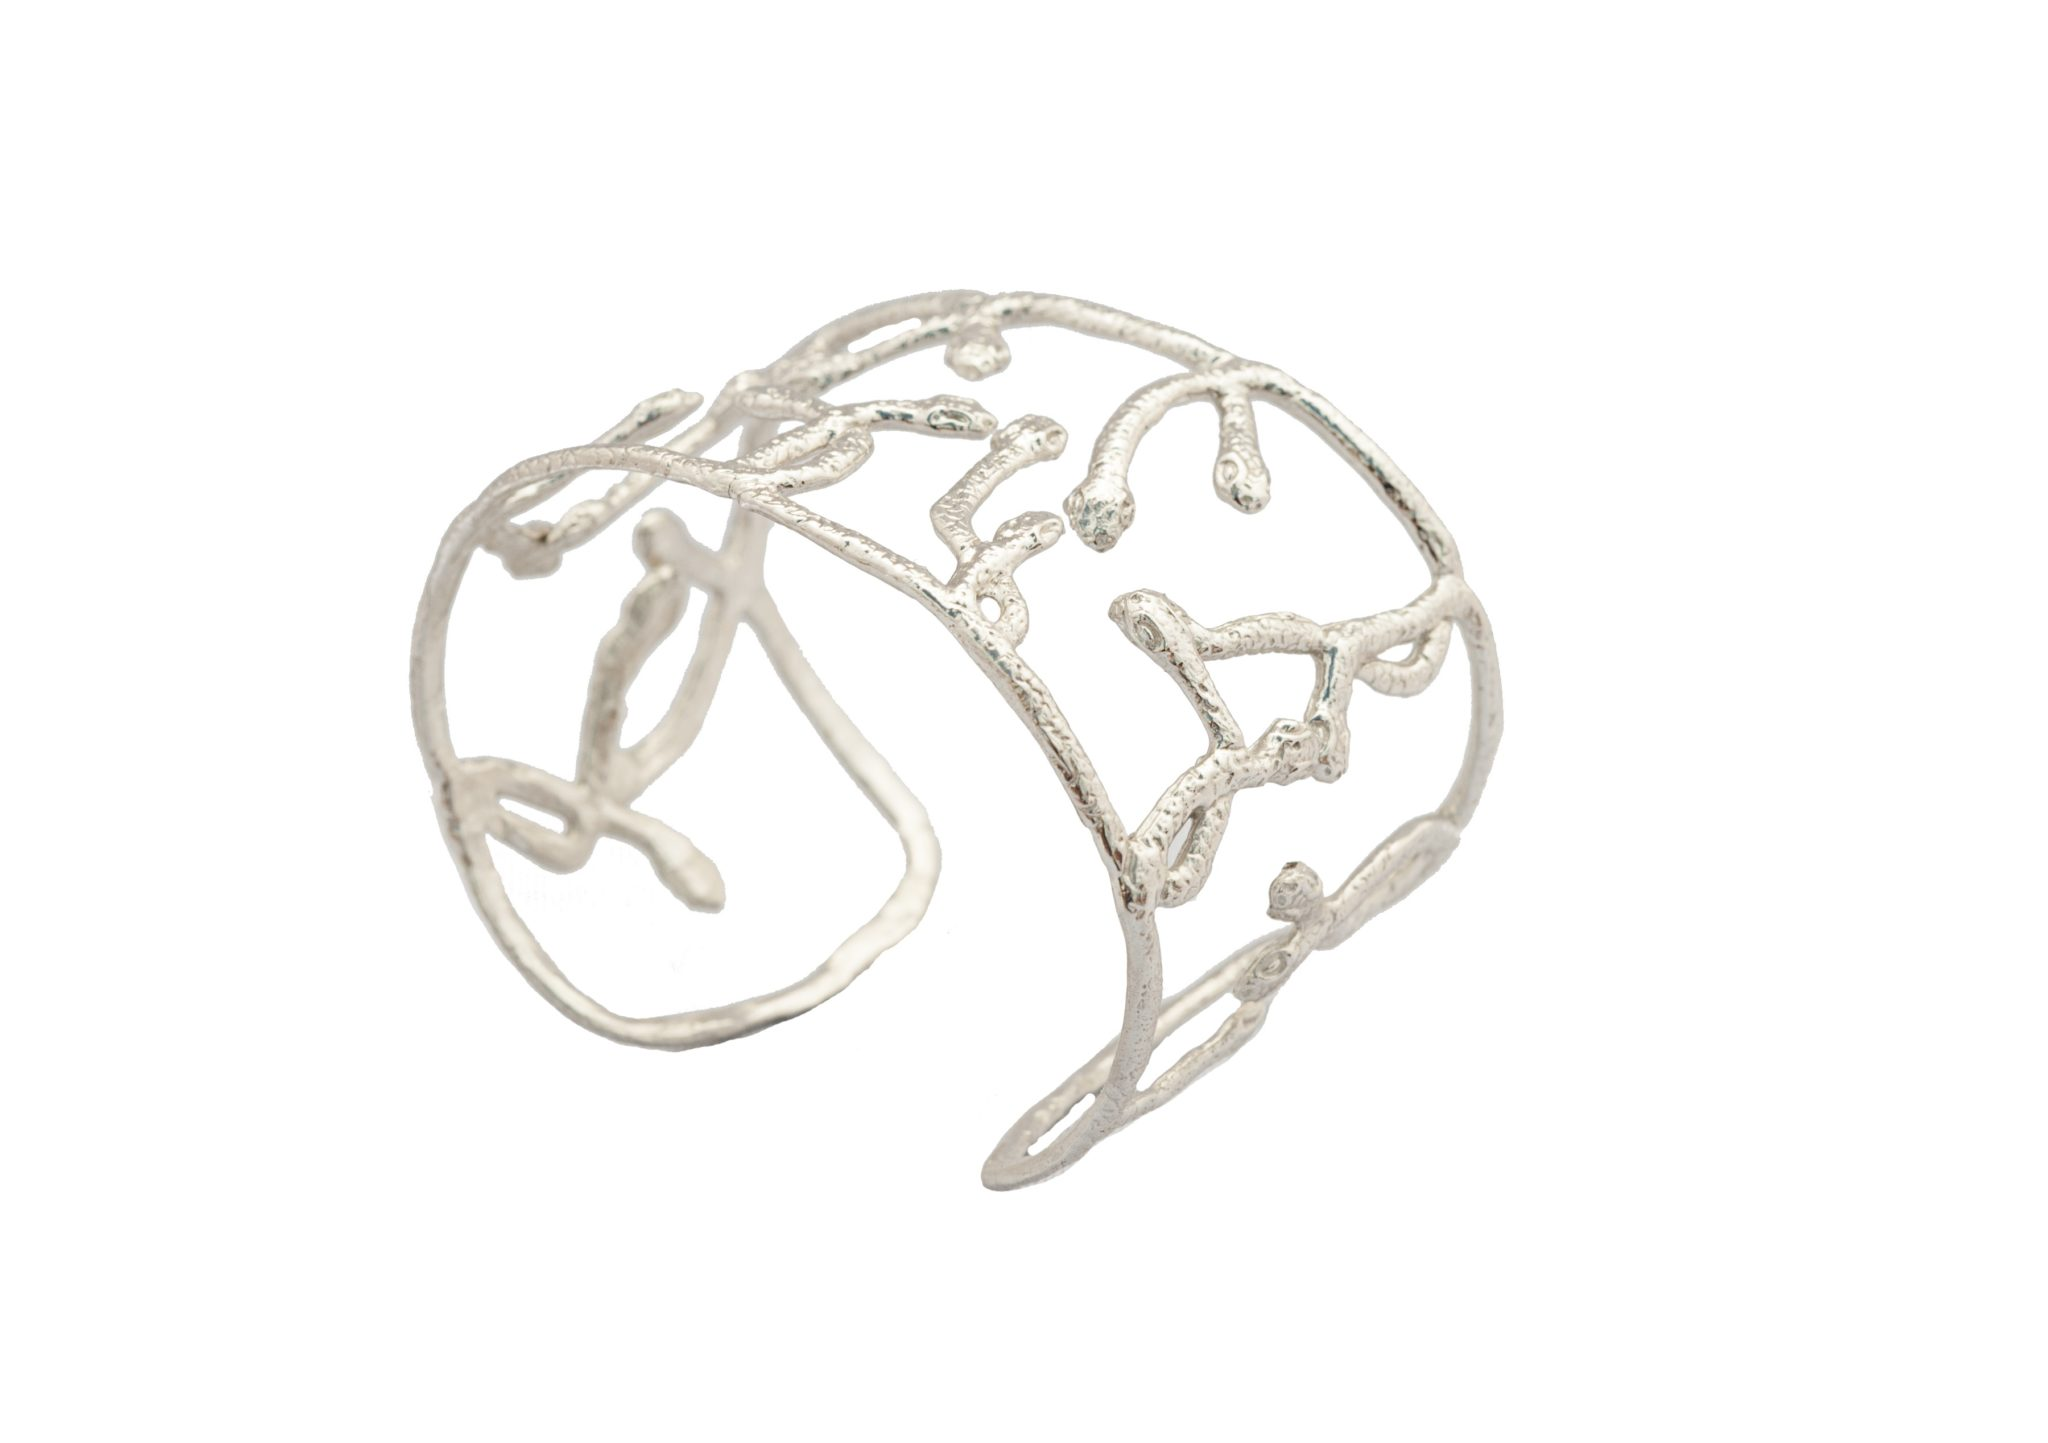 Silver cuff bracelets with criss cross snakes